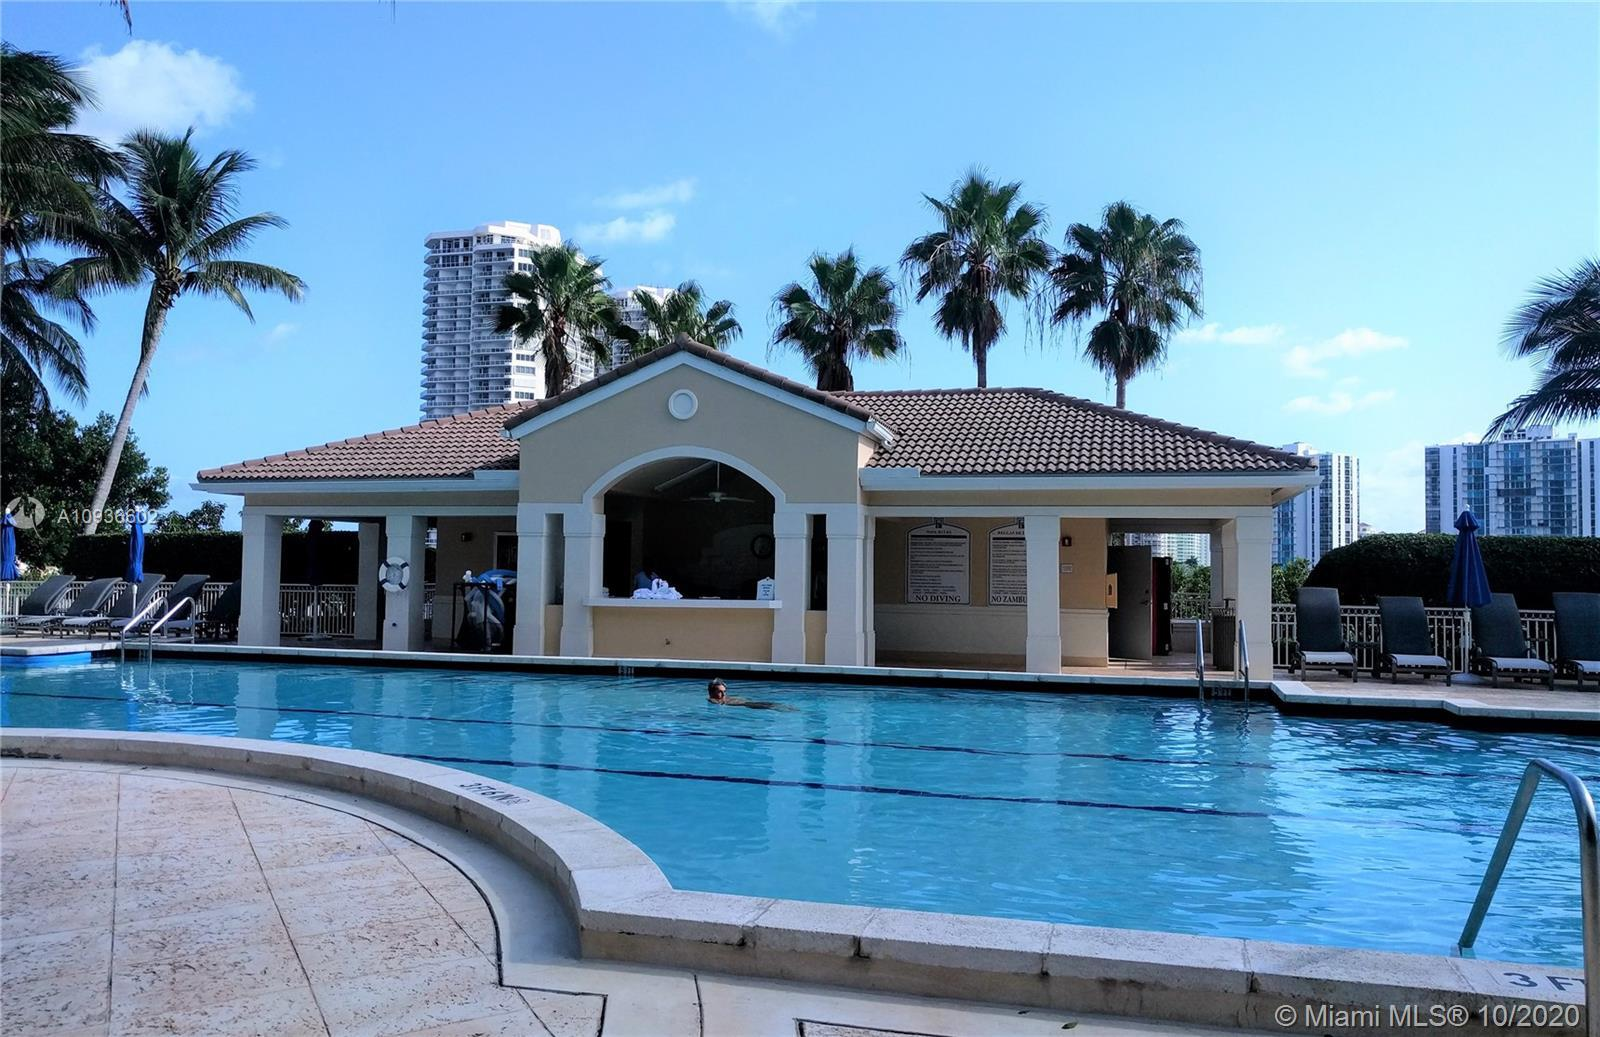 The Point South Tower Condos for Sale at Aventura